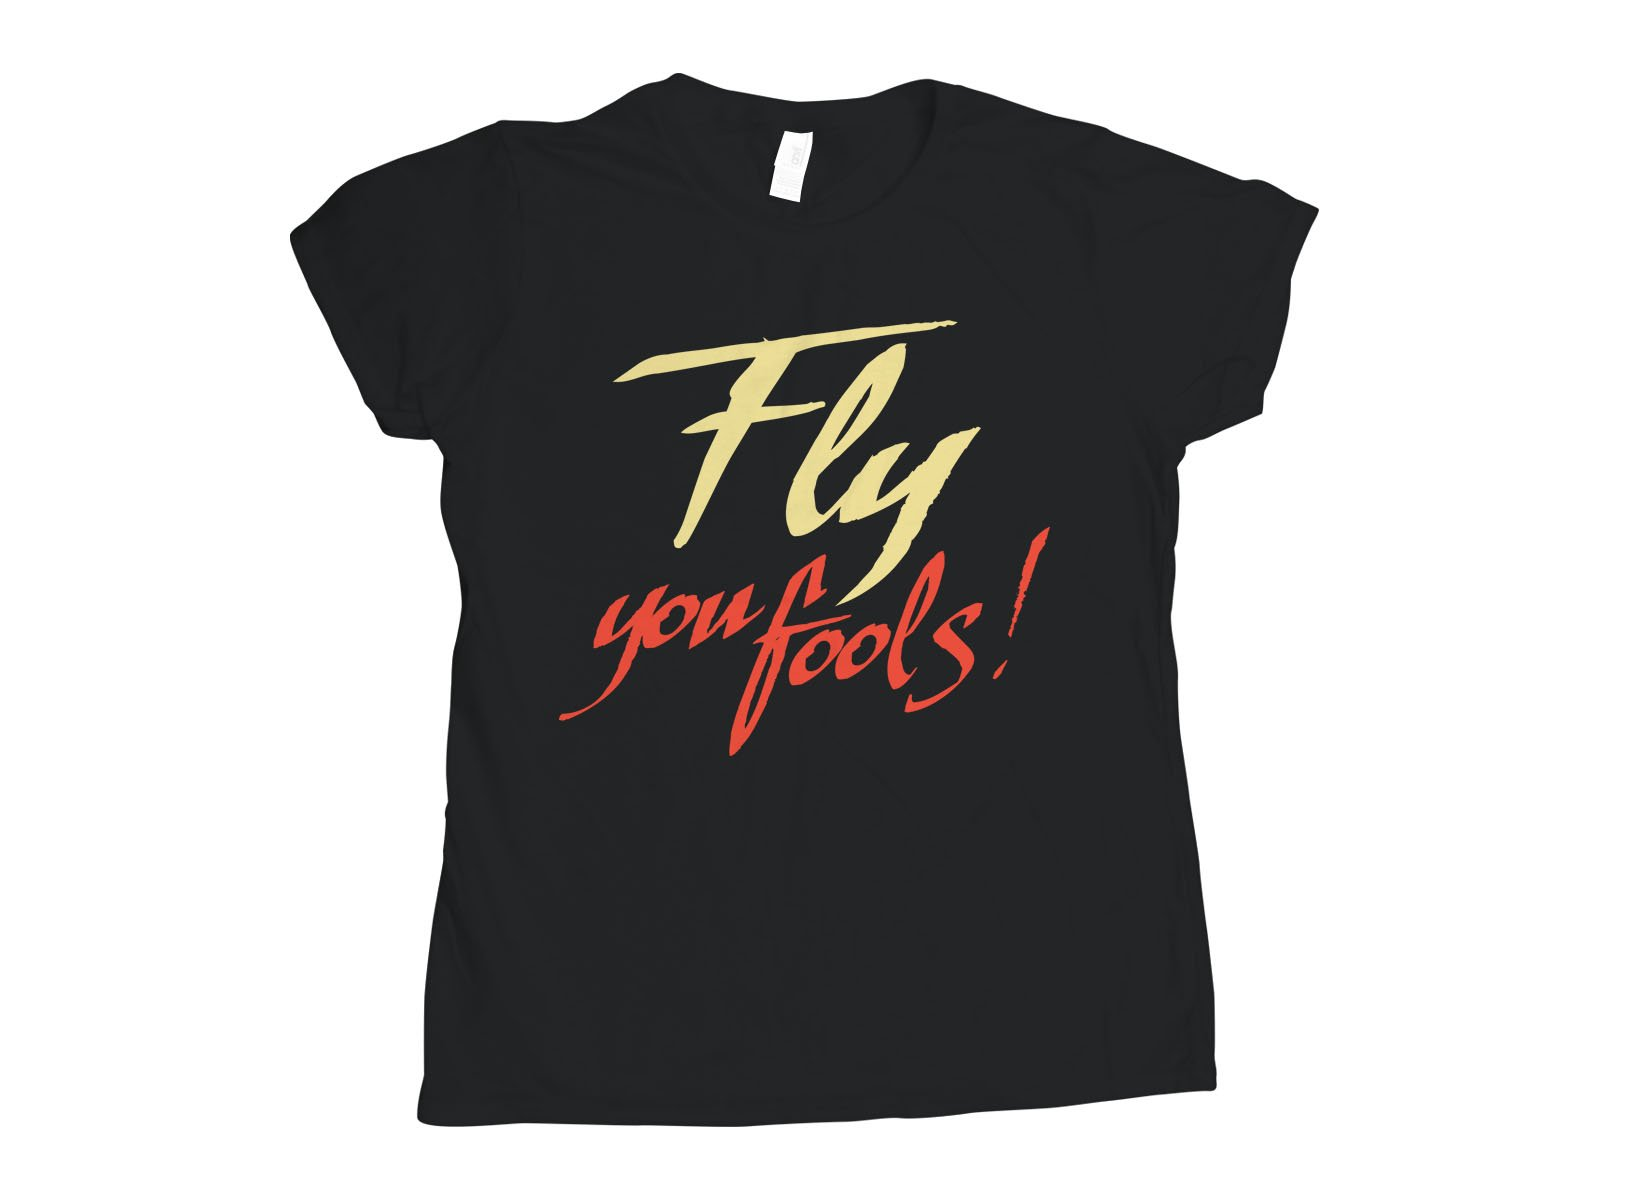 Fly You Fools! on Womens T-Shirt